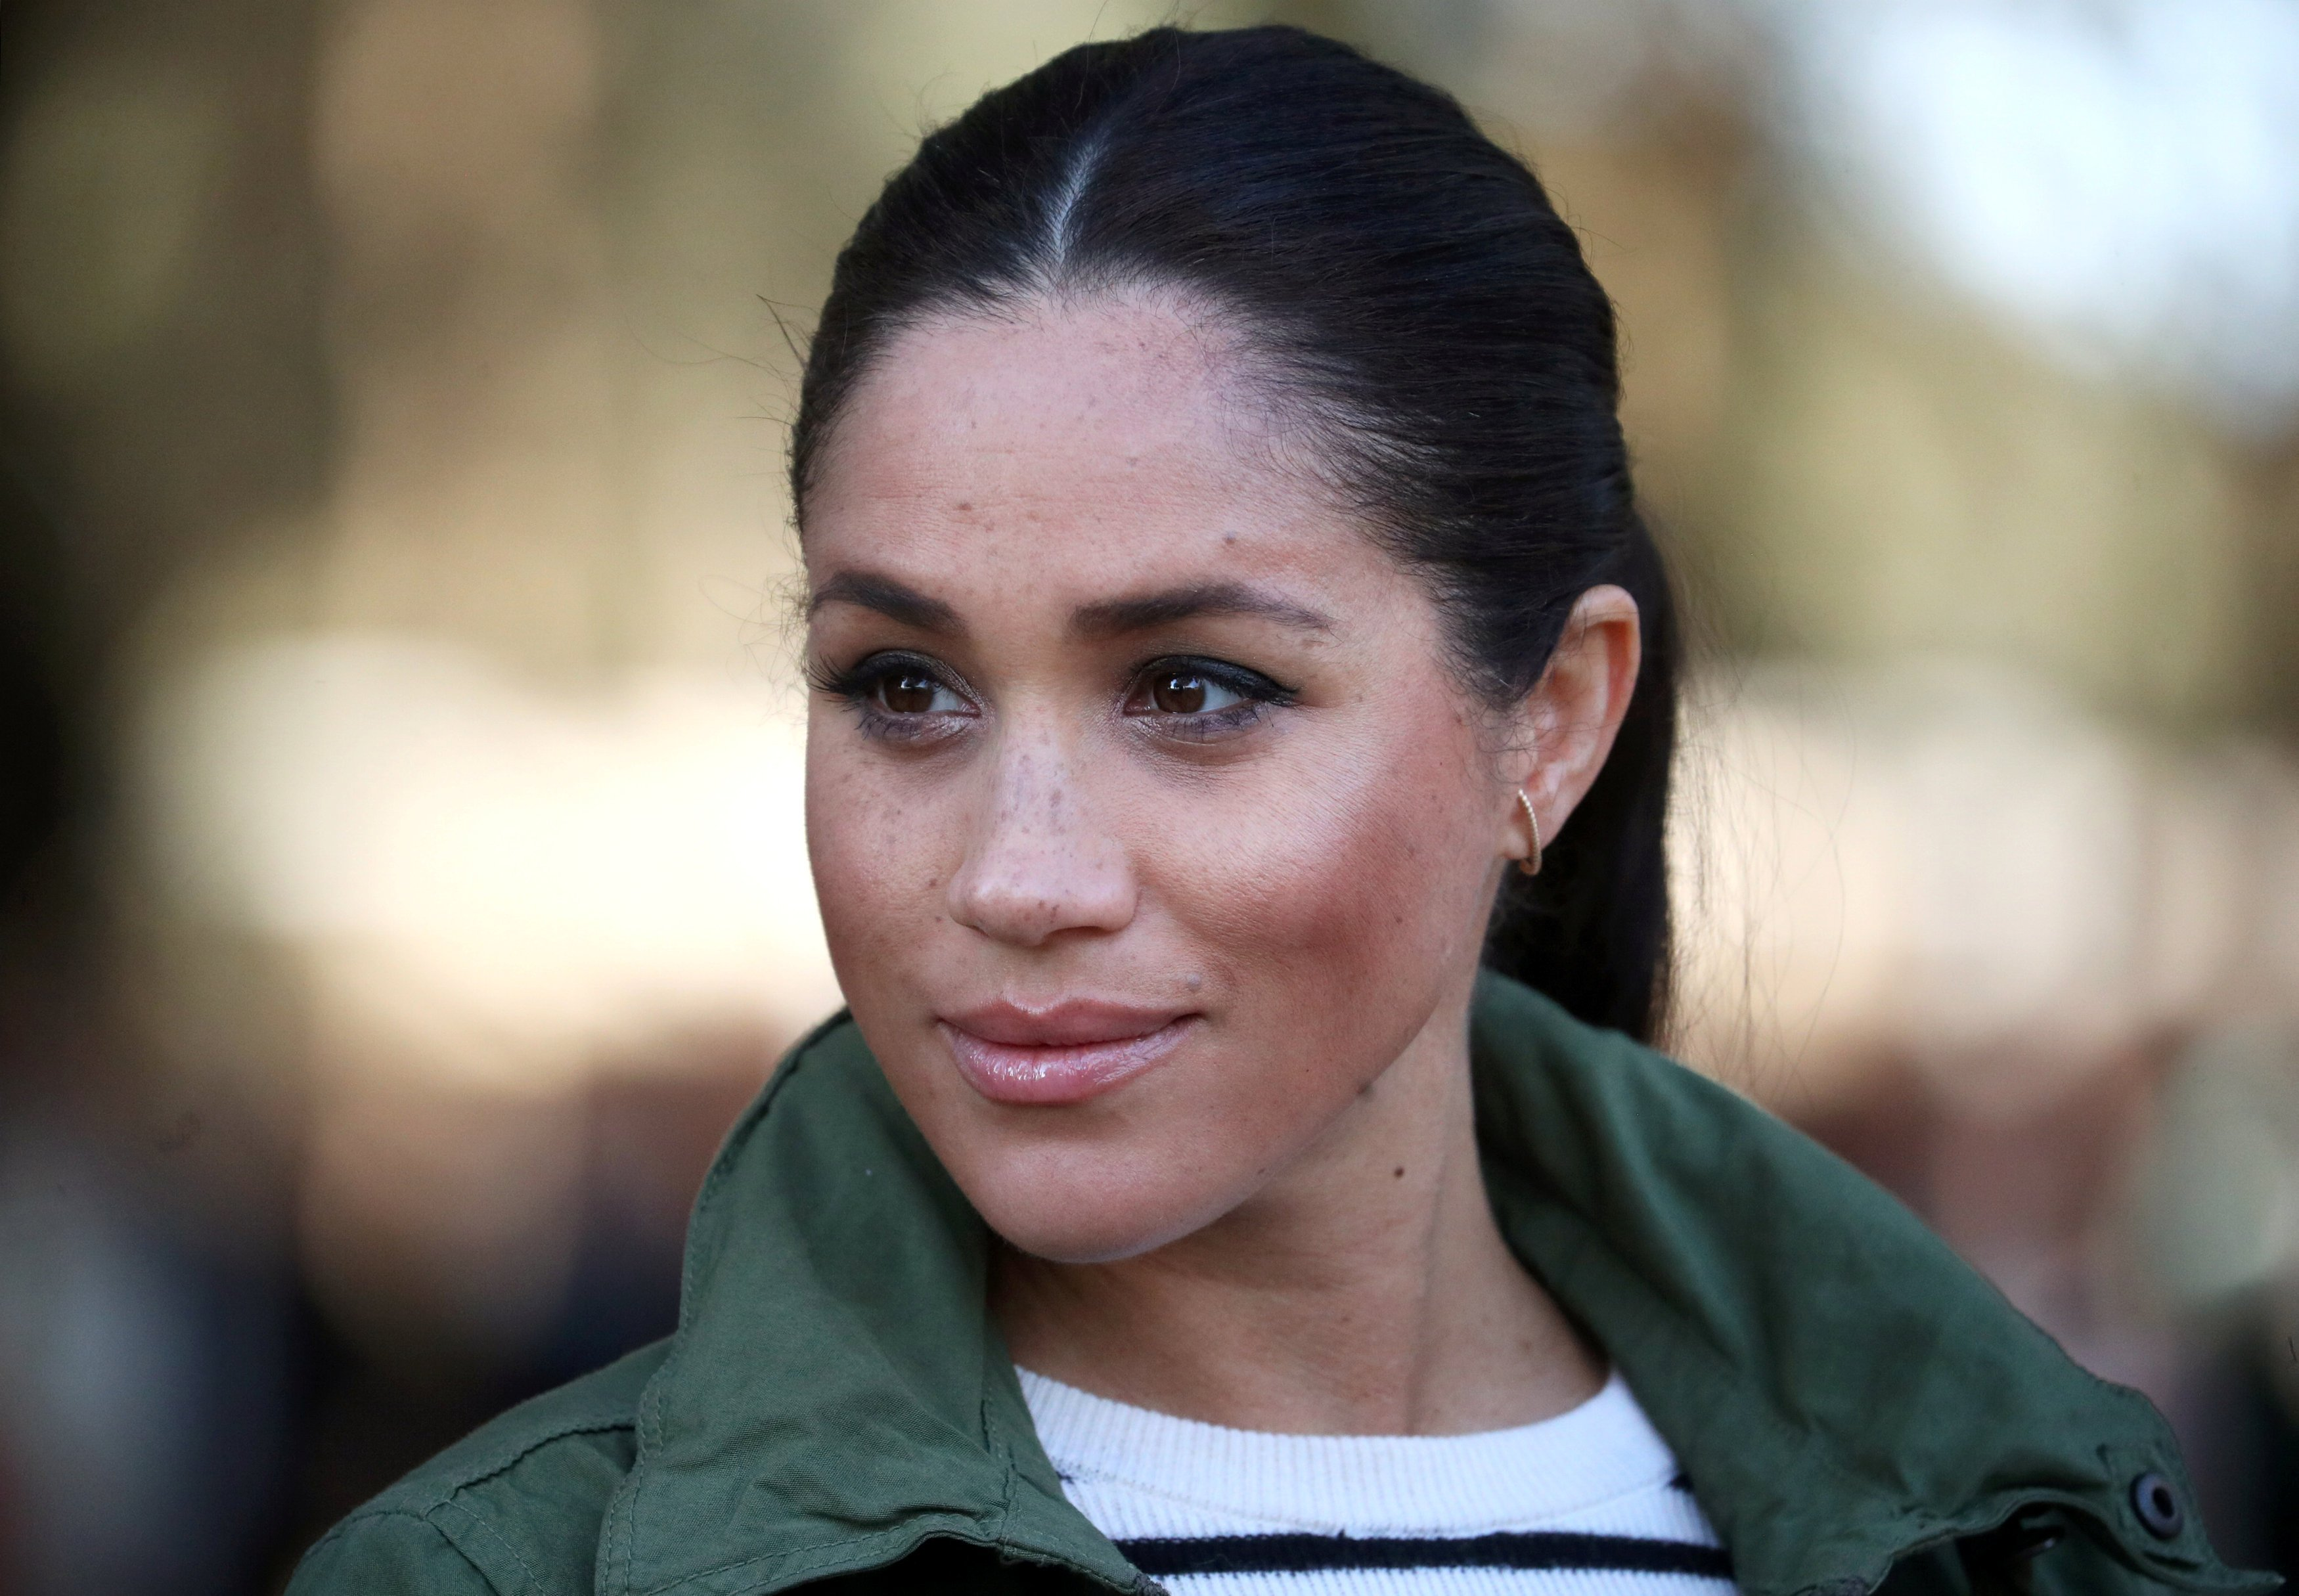 Meghan Markle during a visit to Morocco with Prince Harry in February 2019| Photo: Getty Images